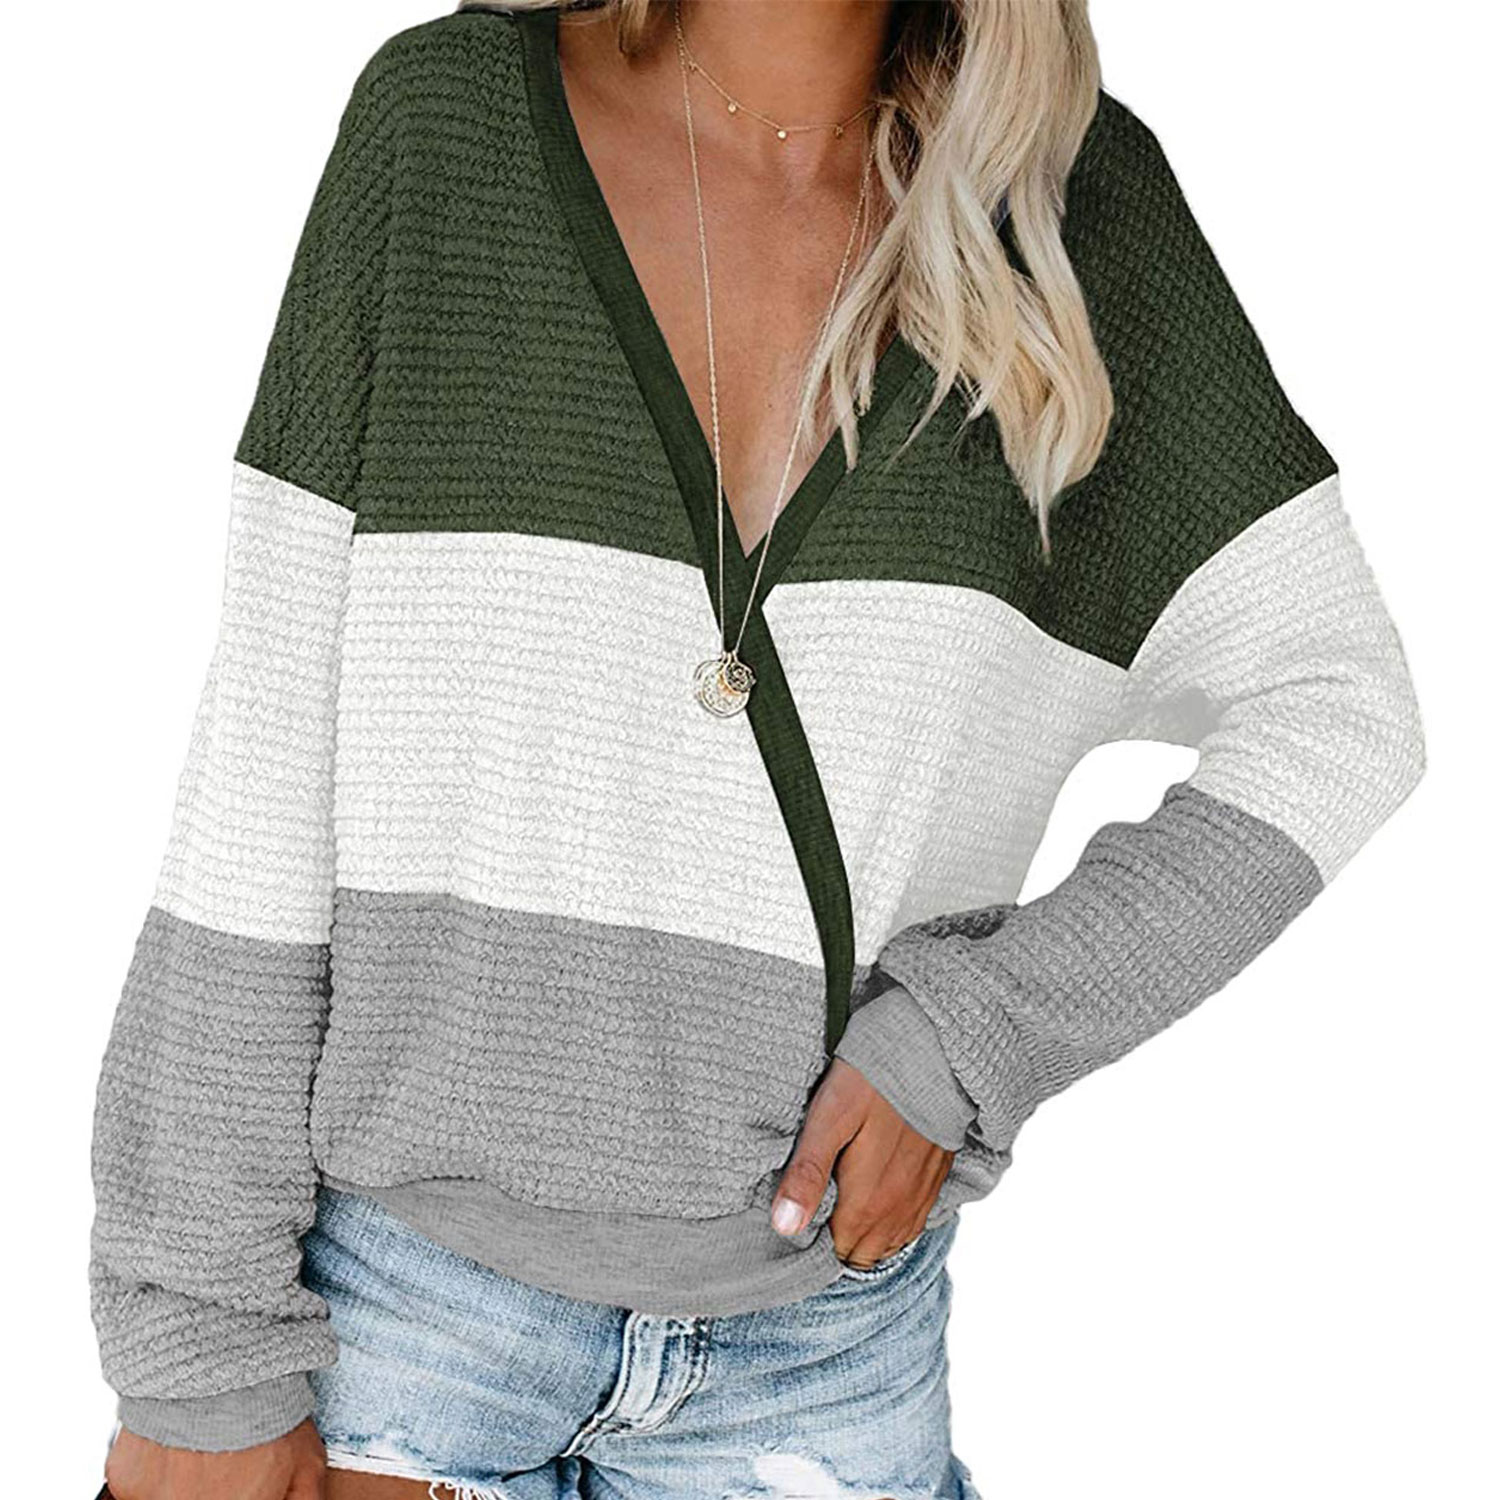 women's deep v-neck wrap sweater long sleeve waffle knit pullover, green, white and gray striped